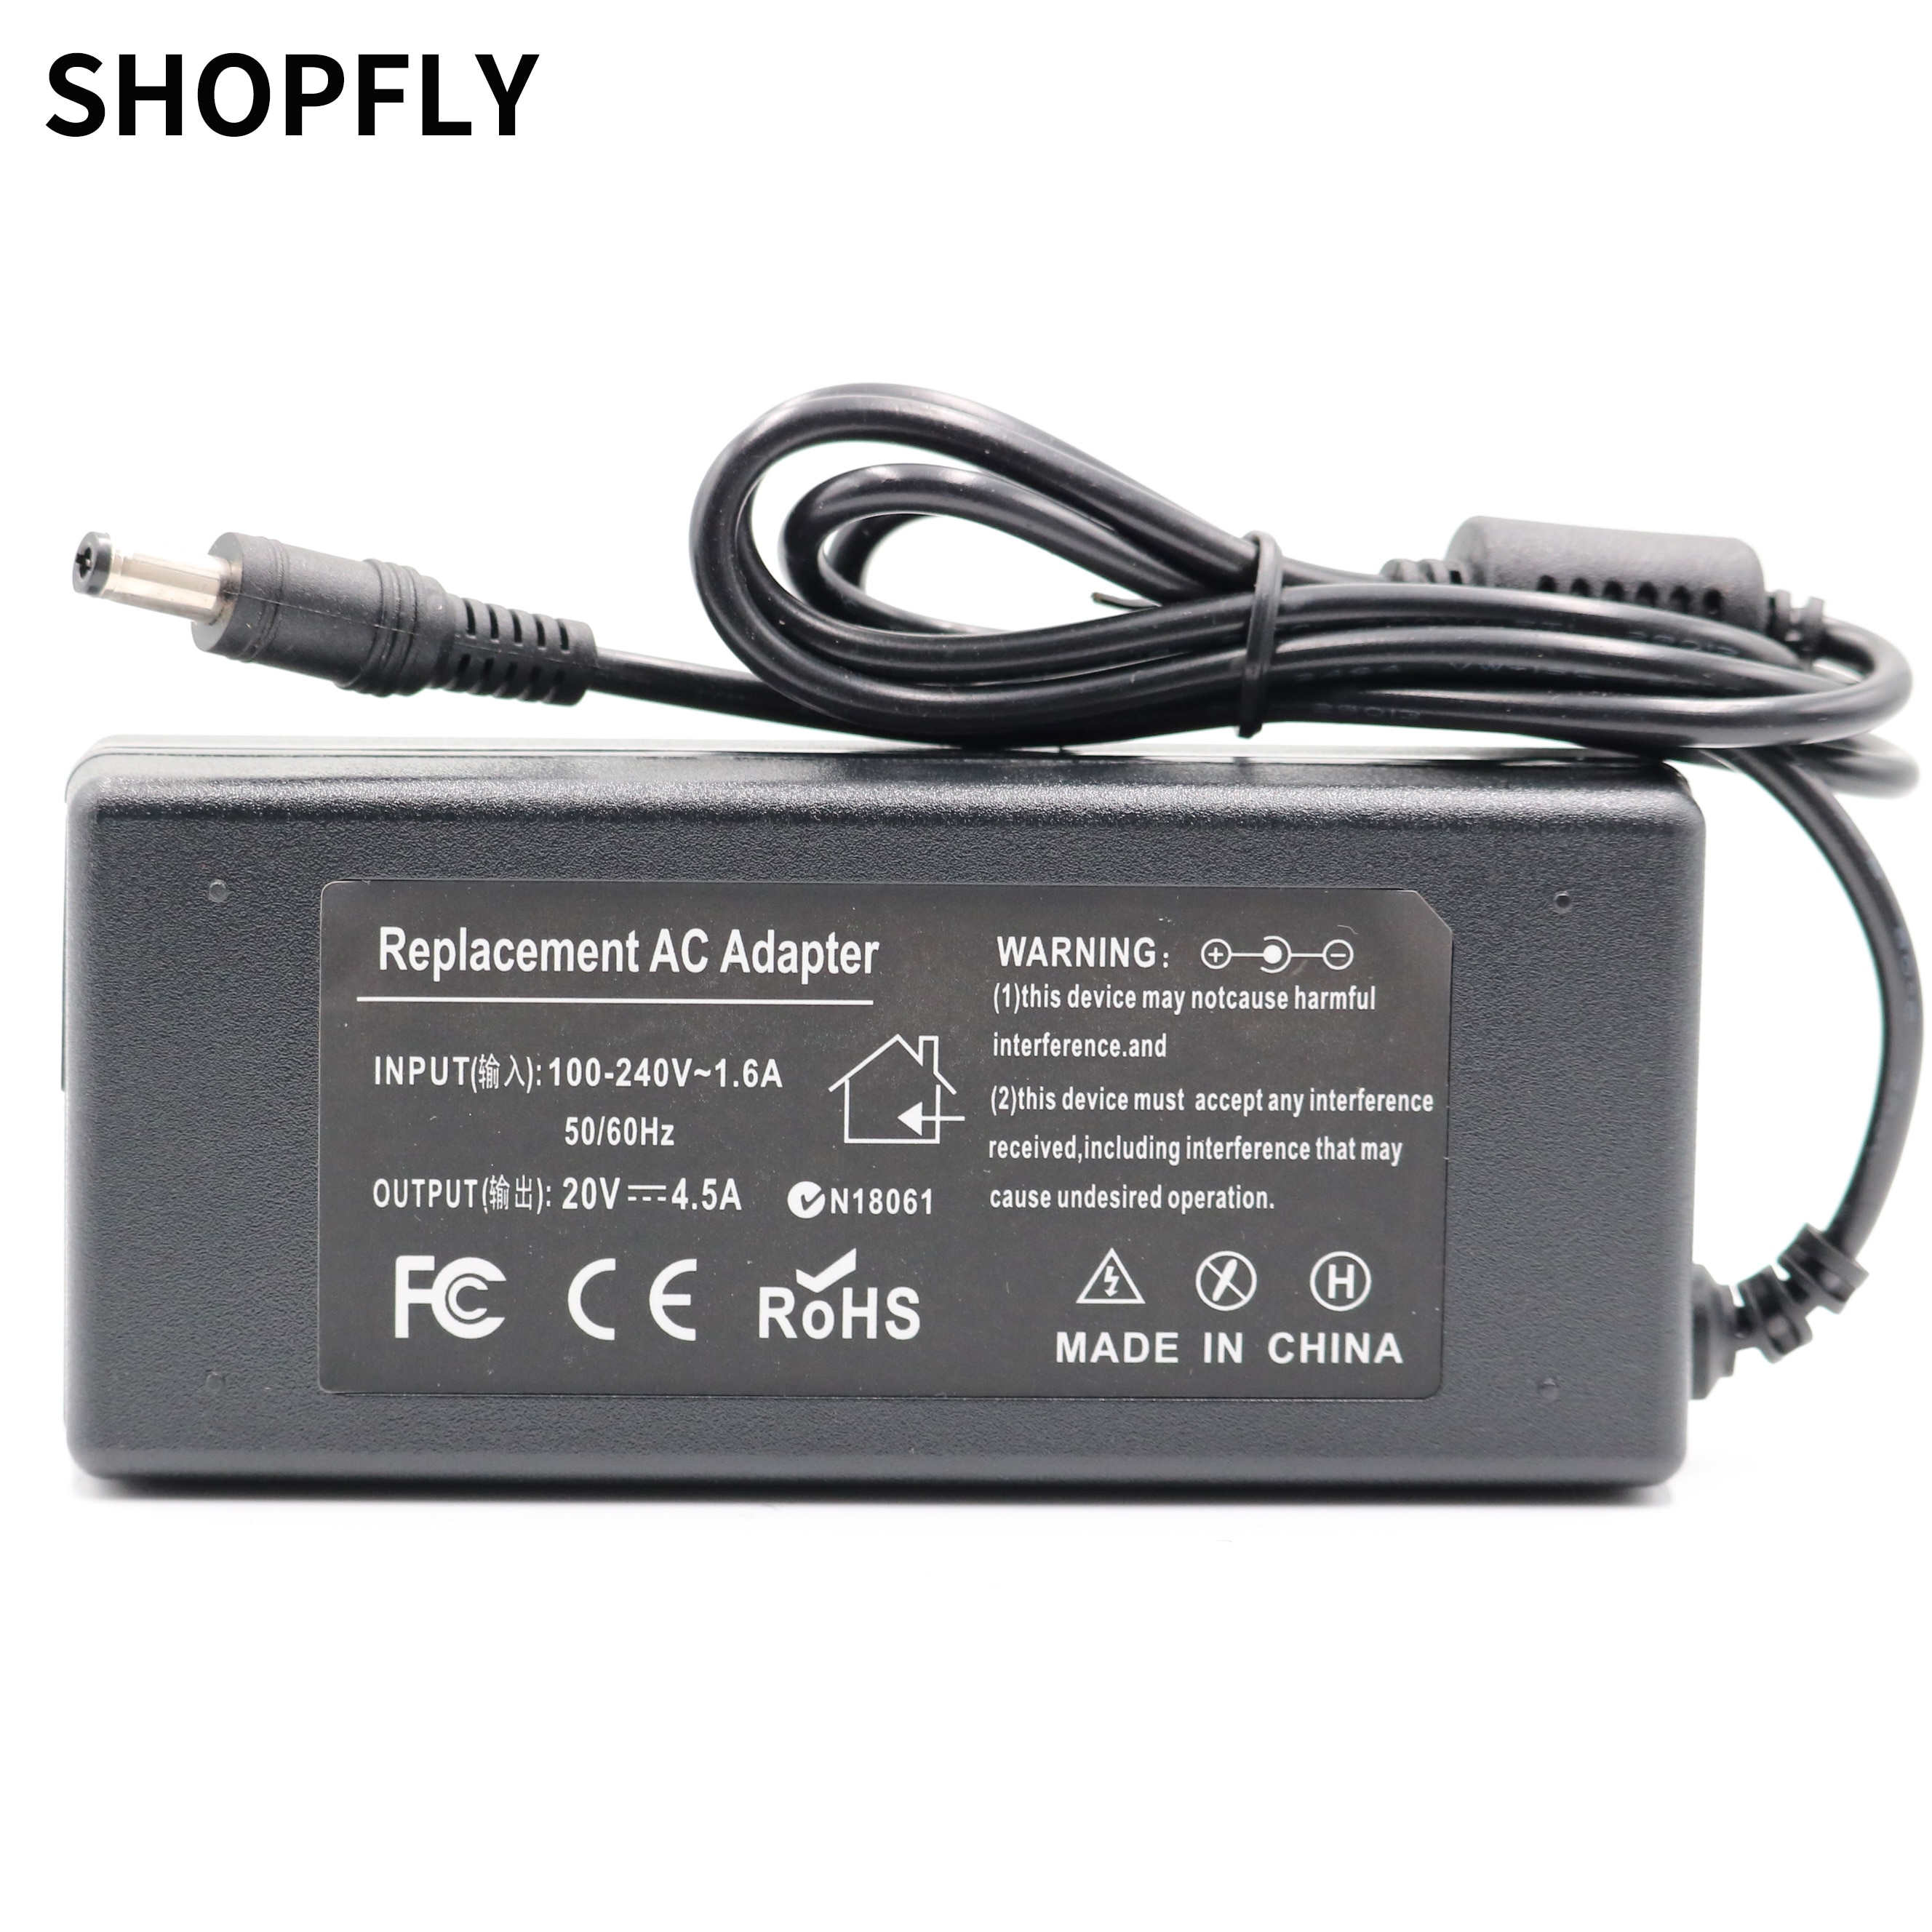 Adapter G585 G570 /battery 90W charger 20v 4.5a G575 for lenovo G485 G480 power laptop G580 G560e G780 100% new lenovo g570 g575 bottom case cover